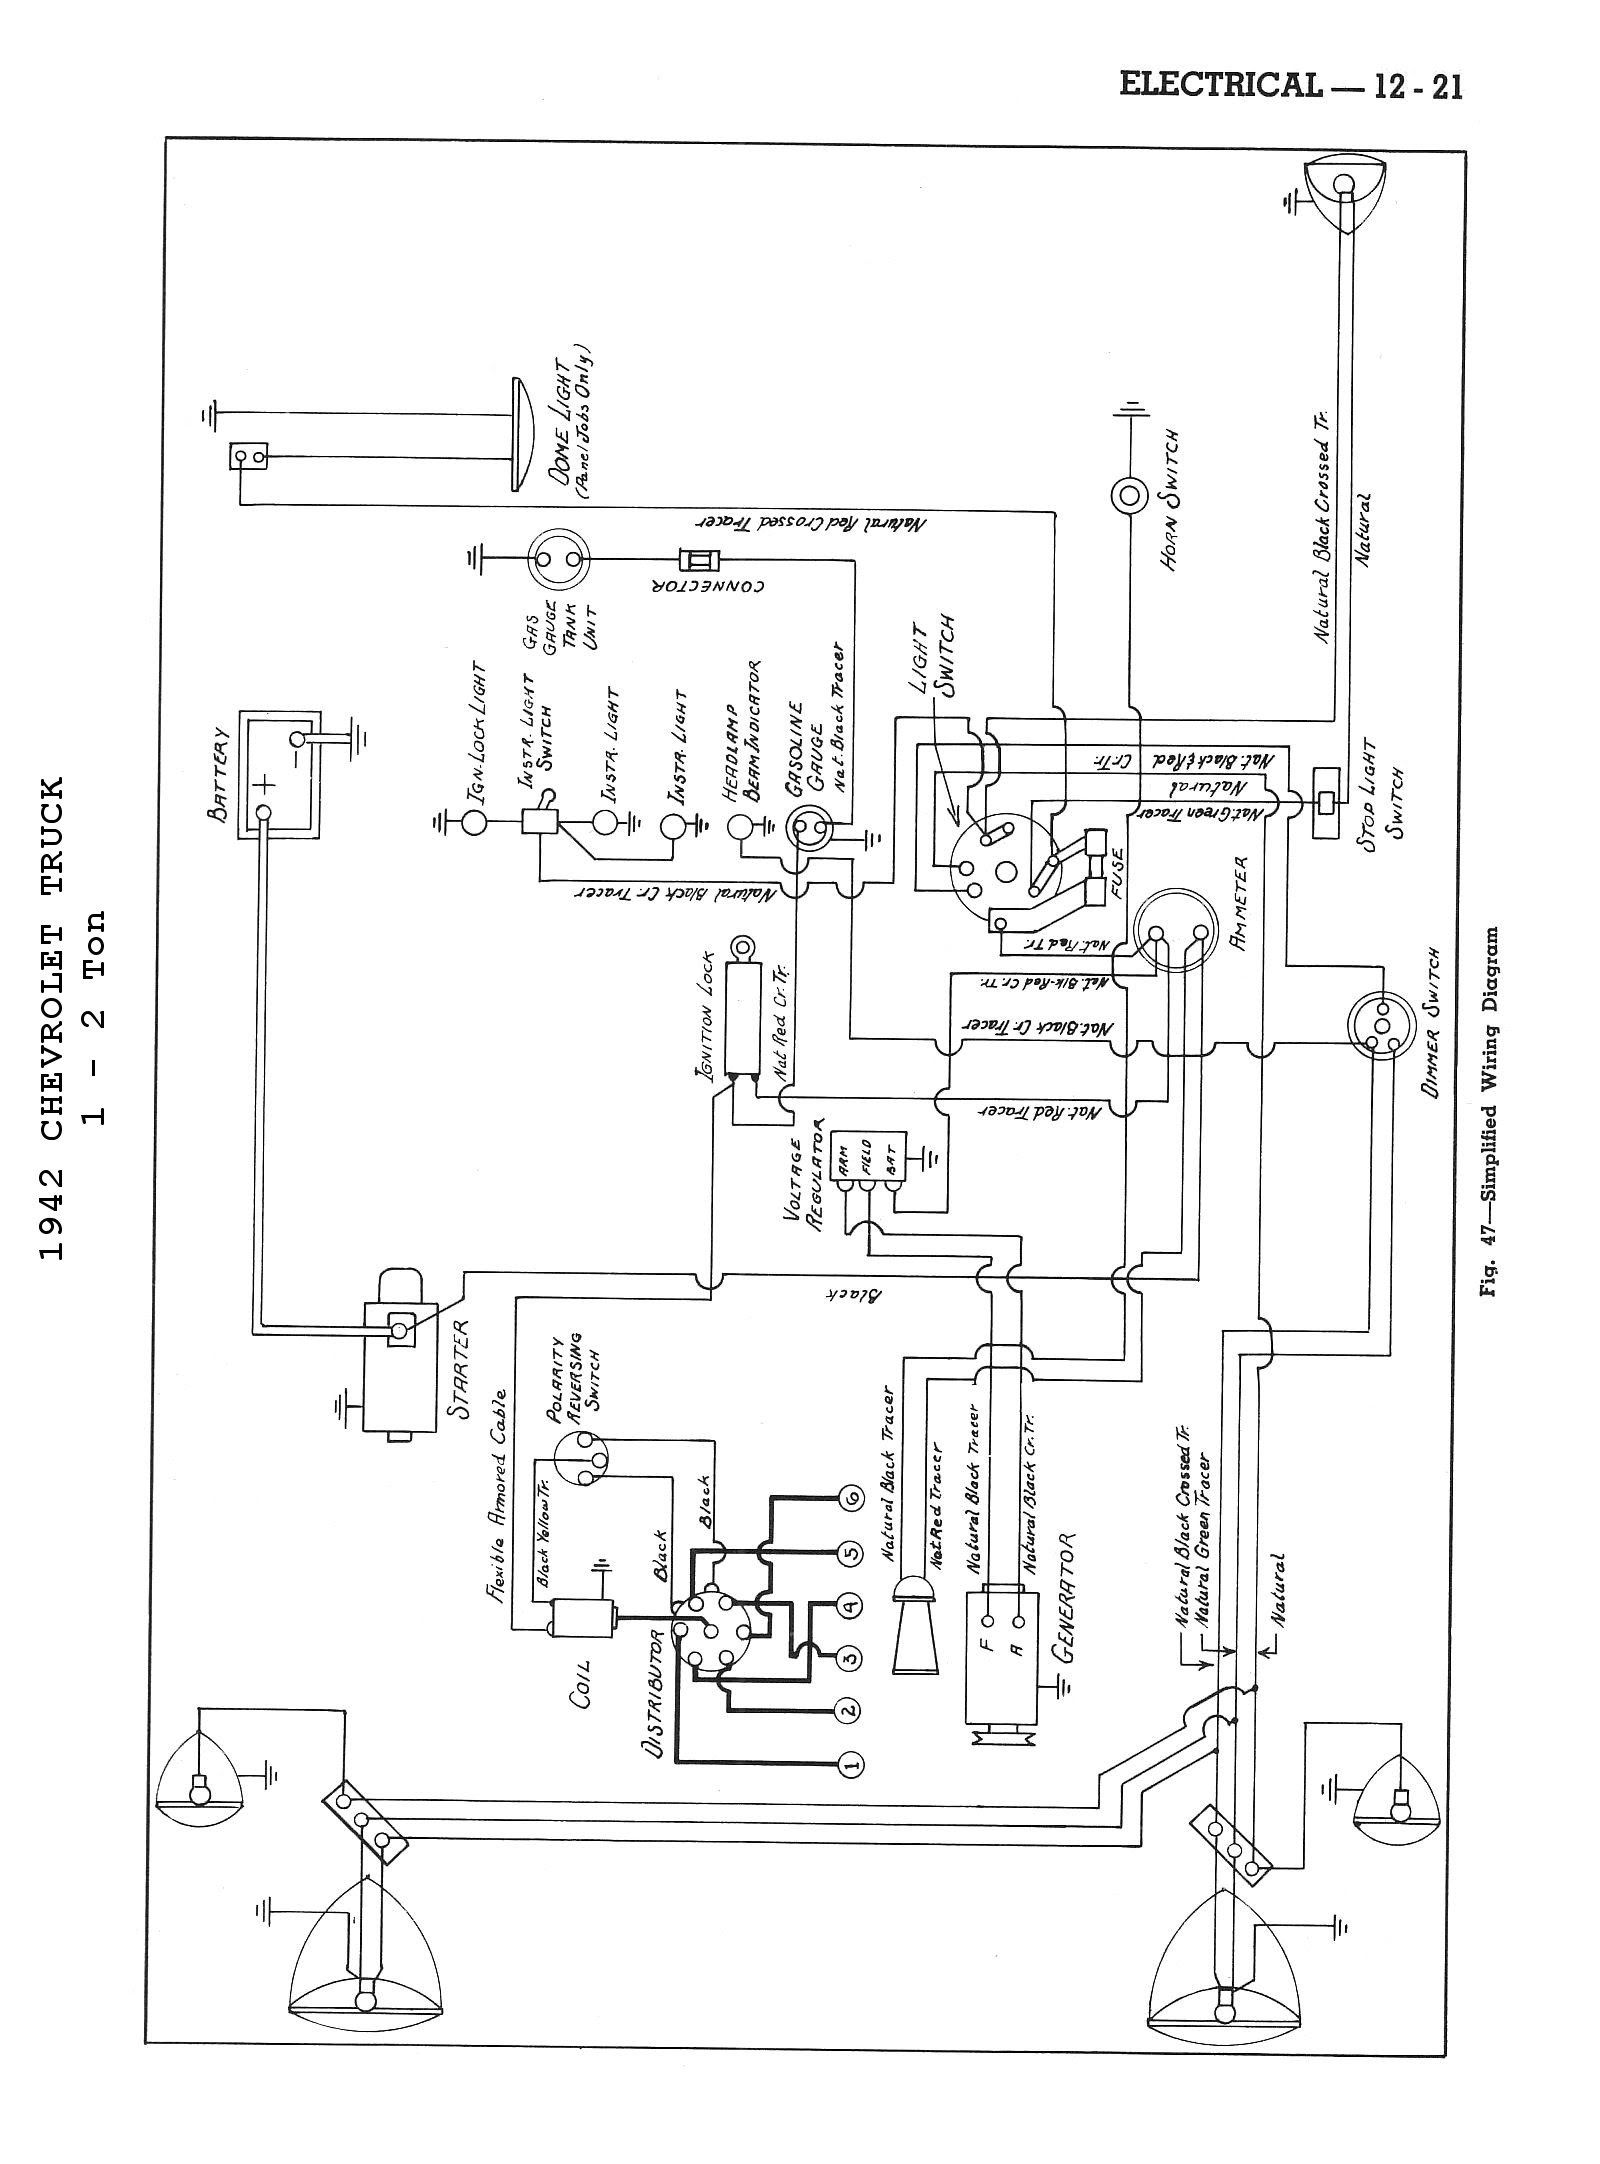 1955 Bel Air Wiring Diagram Emg Wiring Diagram Viper 330 Wiring Diagram Schematics